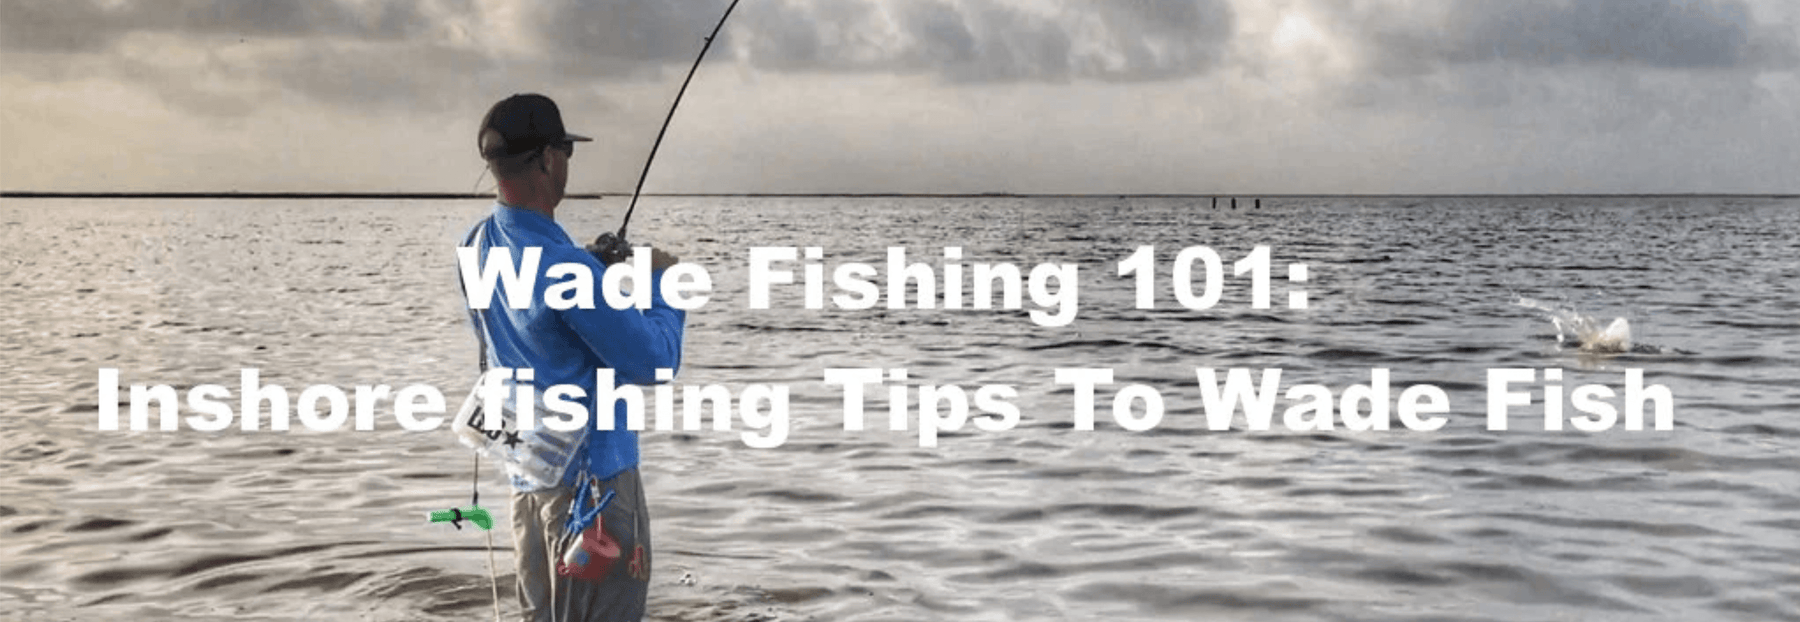 Wade Fishing 101: Inshore Fishing Tips To Wade Fish